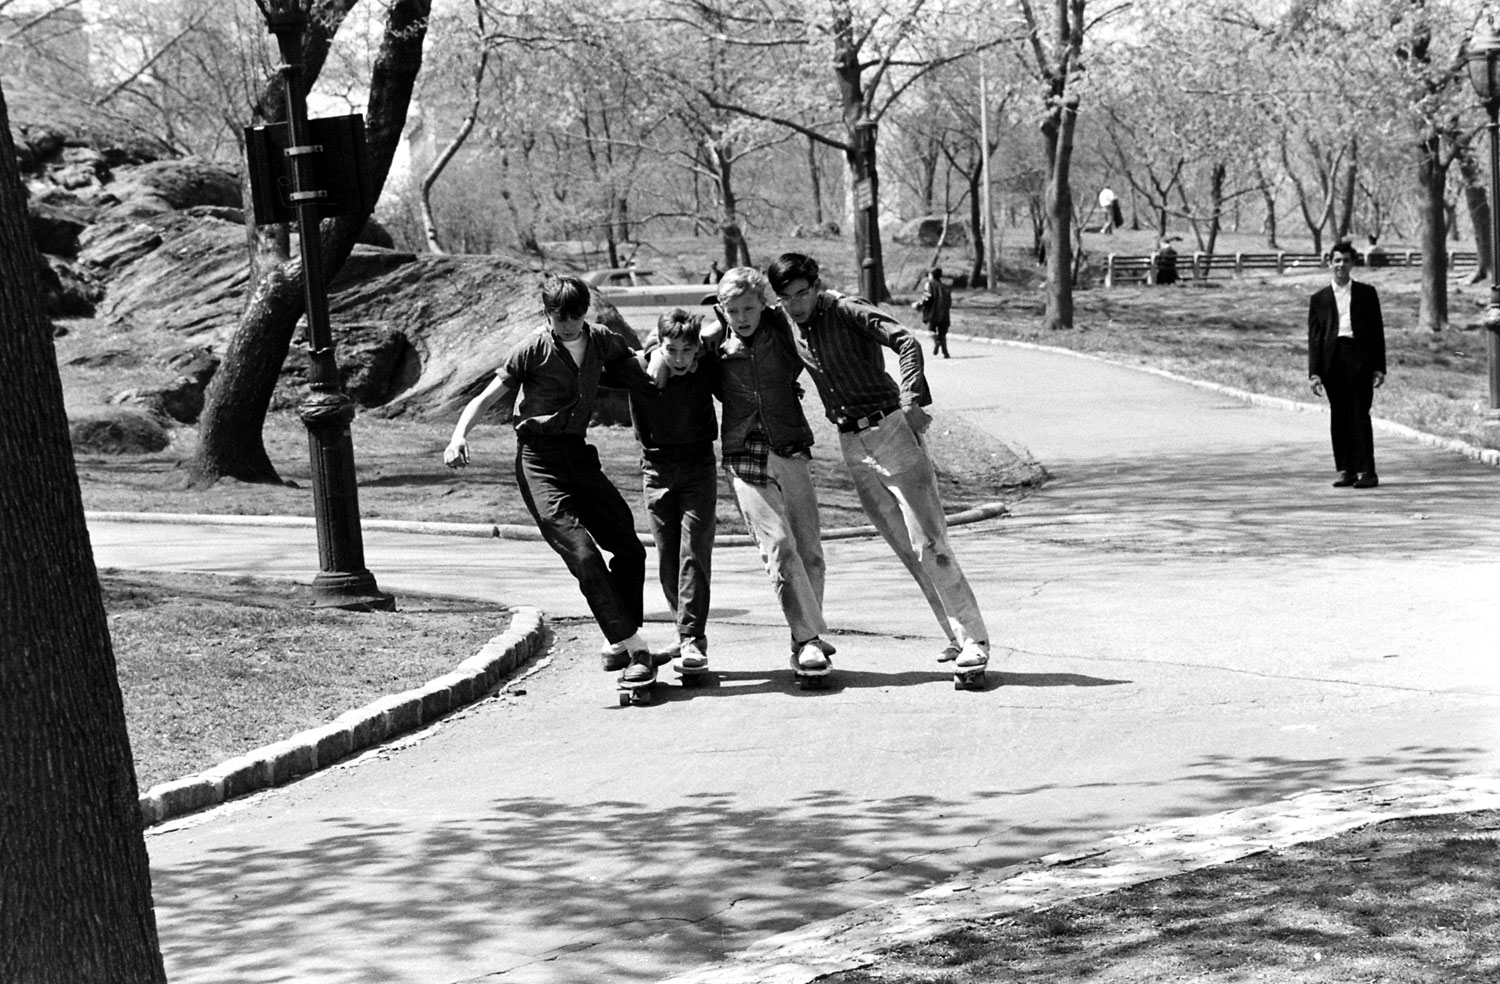 Skateboarding in New York City, 1965